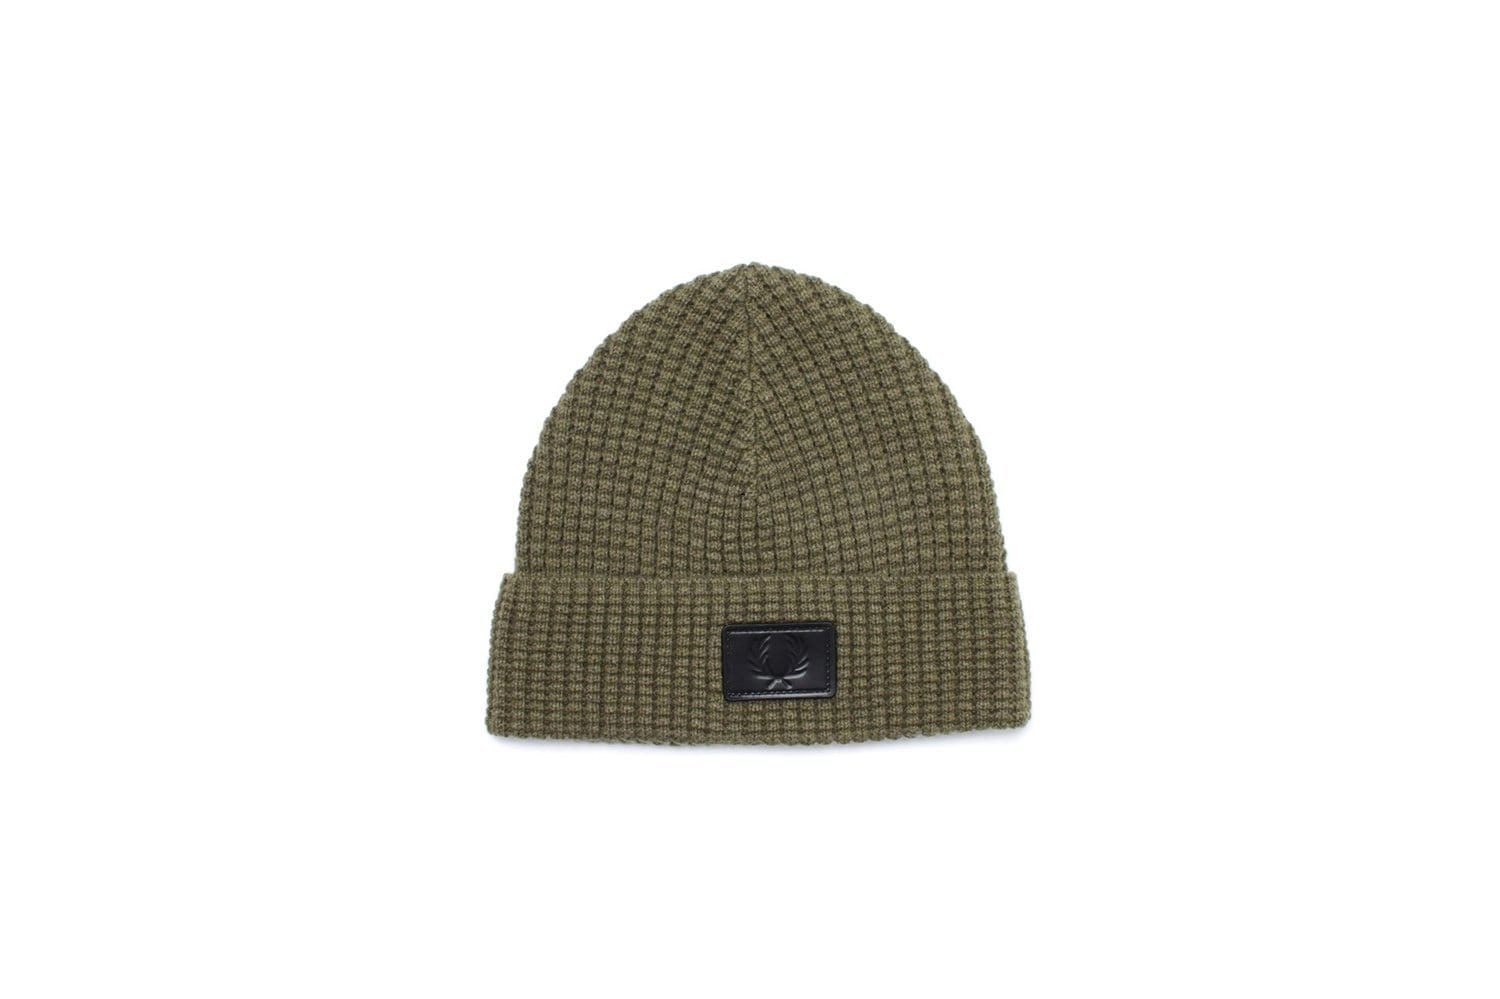 WAFFLE KNIT BEANIE - C4104 HATS FRED PERRY